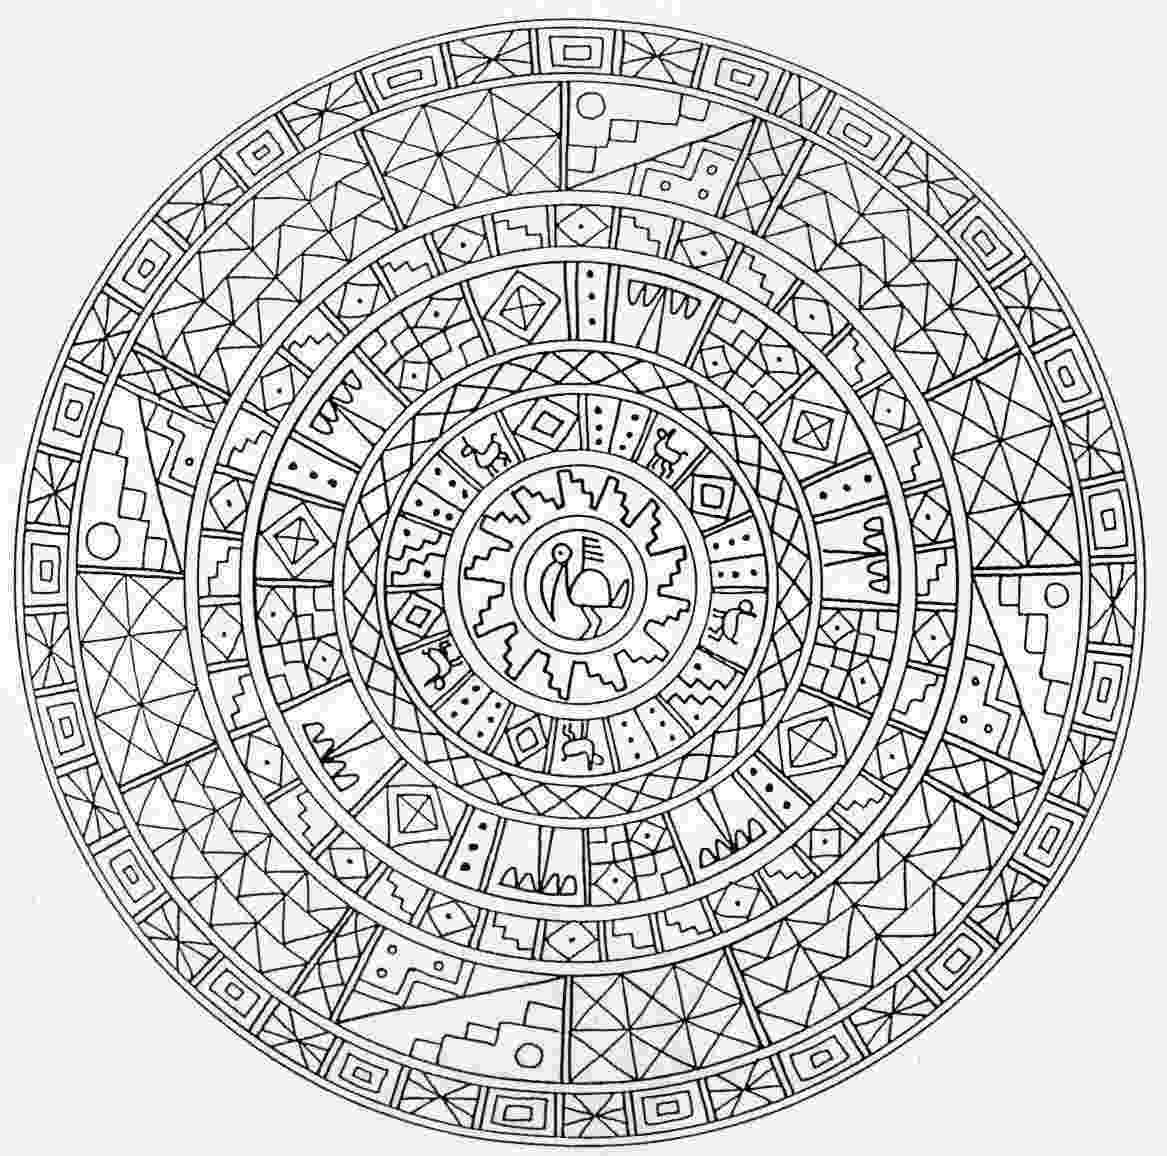 printable mandala coloring pages for adults mandala printable adult coloring page from favoreads coloring adults mandala printable for pages